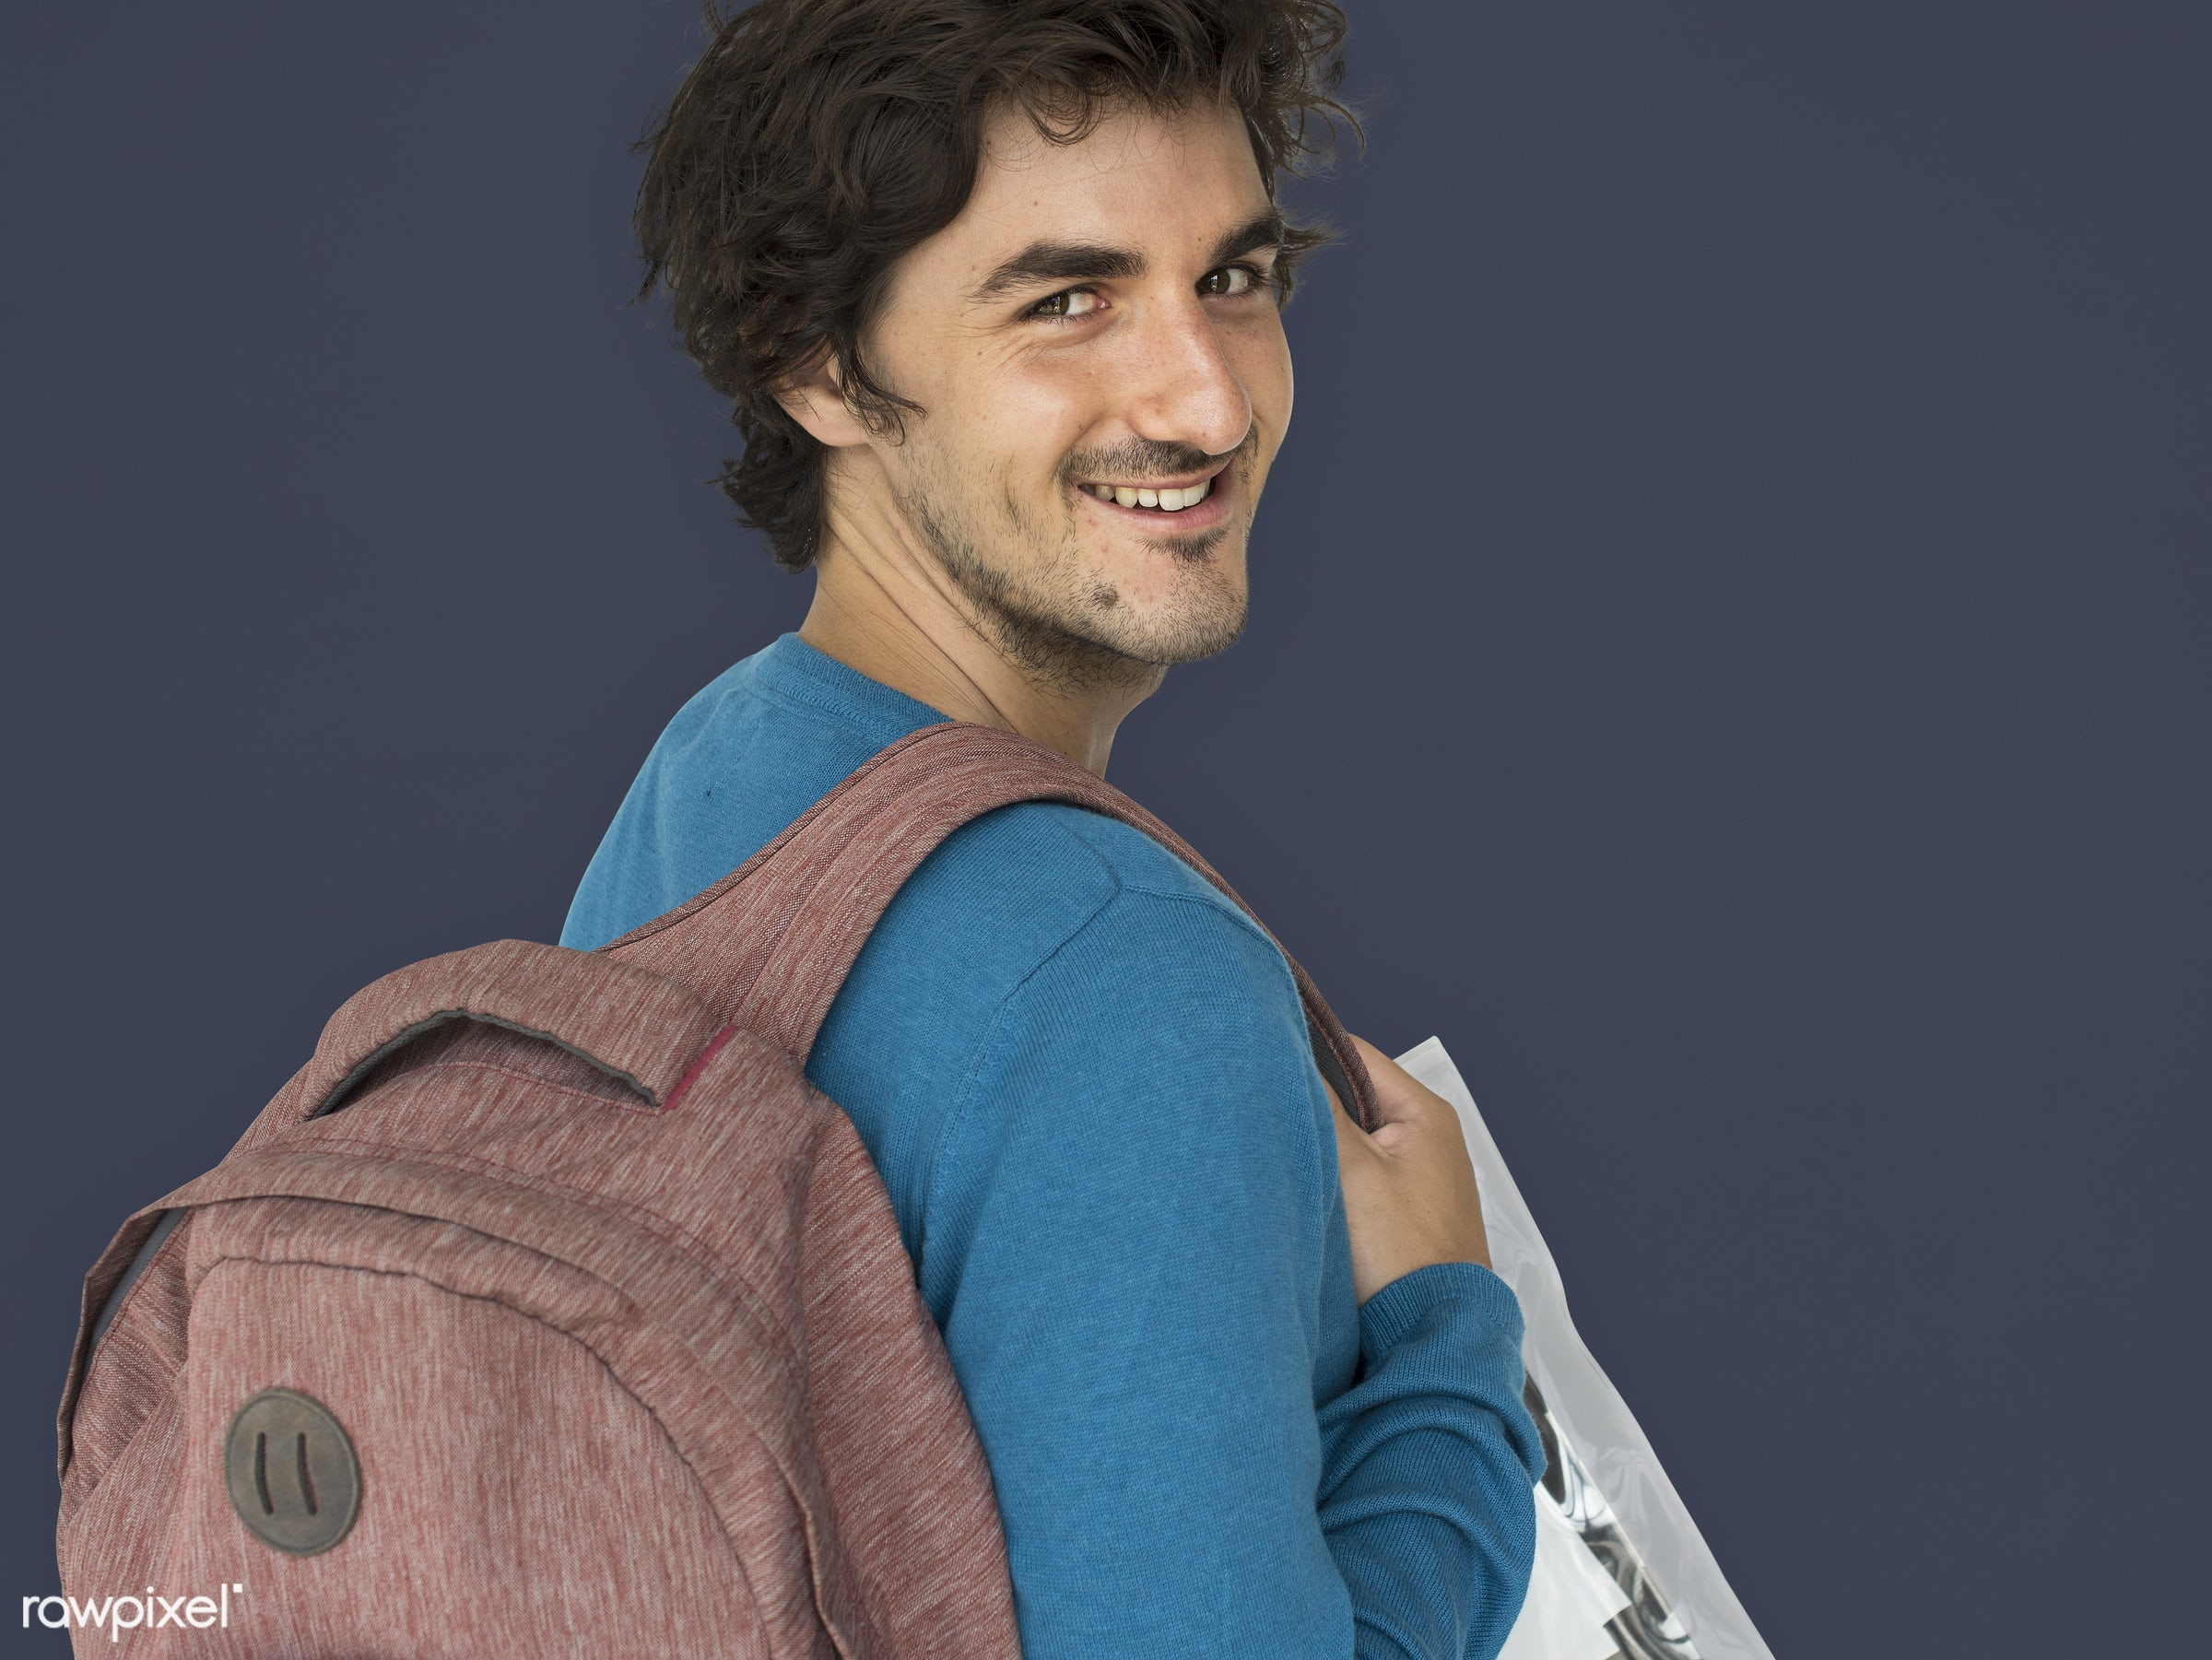 studio, expression, person, people, caucasian, lifestyle, schoolbag, smile, positive, cheerful, isolated, bag, happiness,...